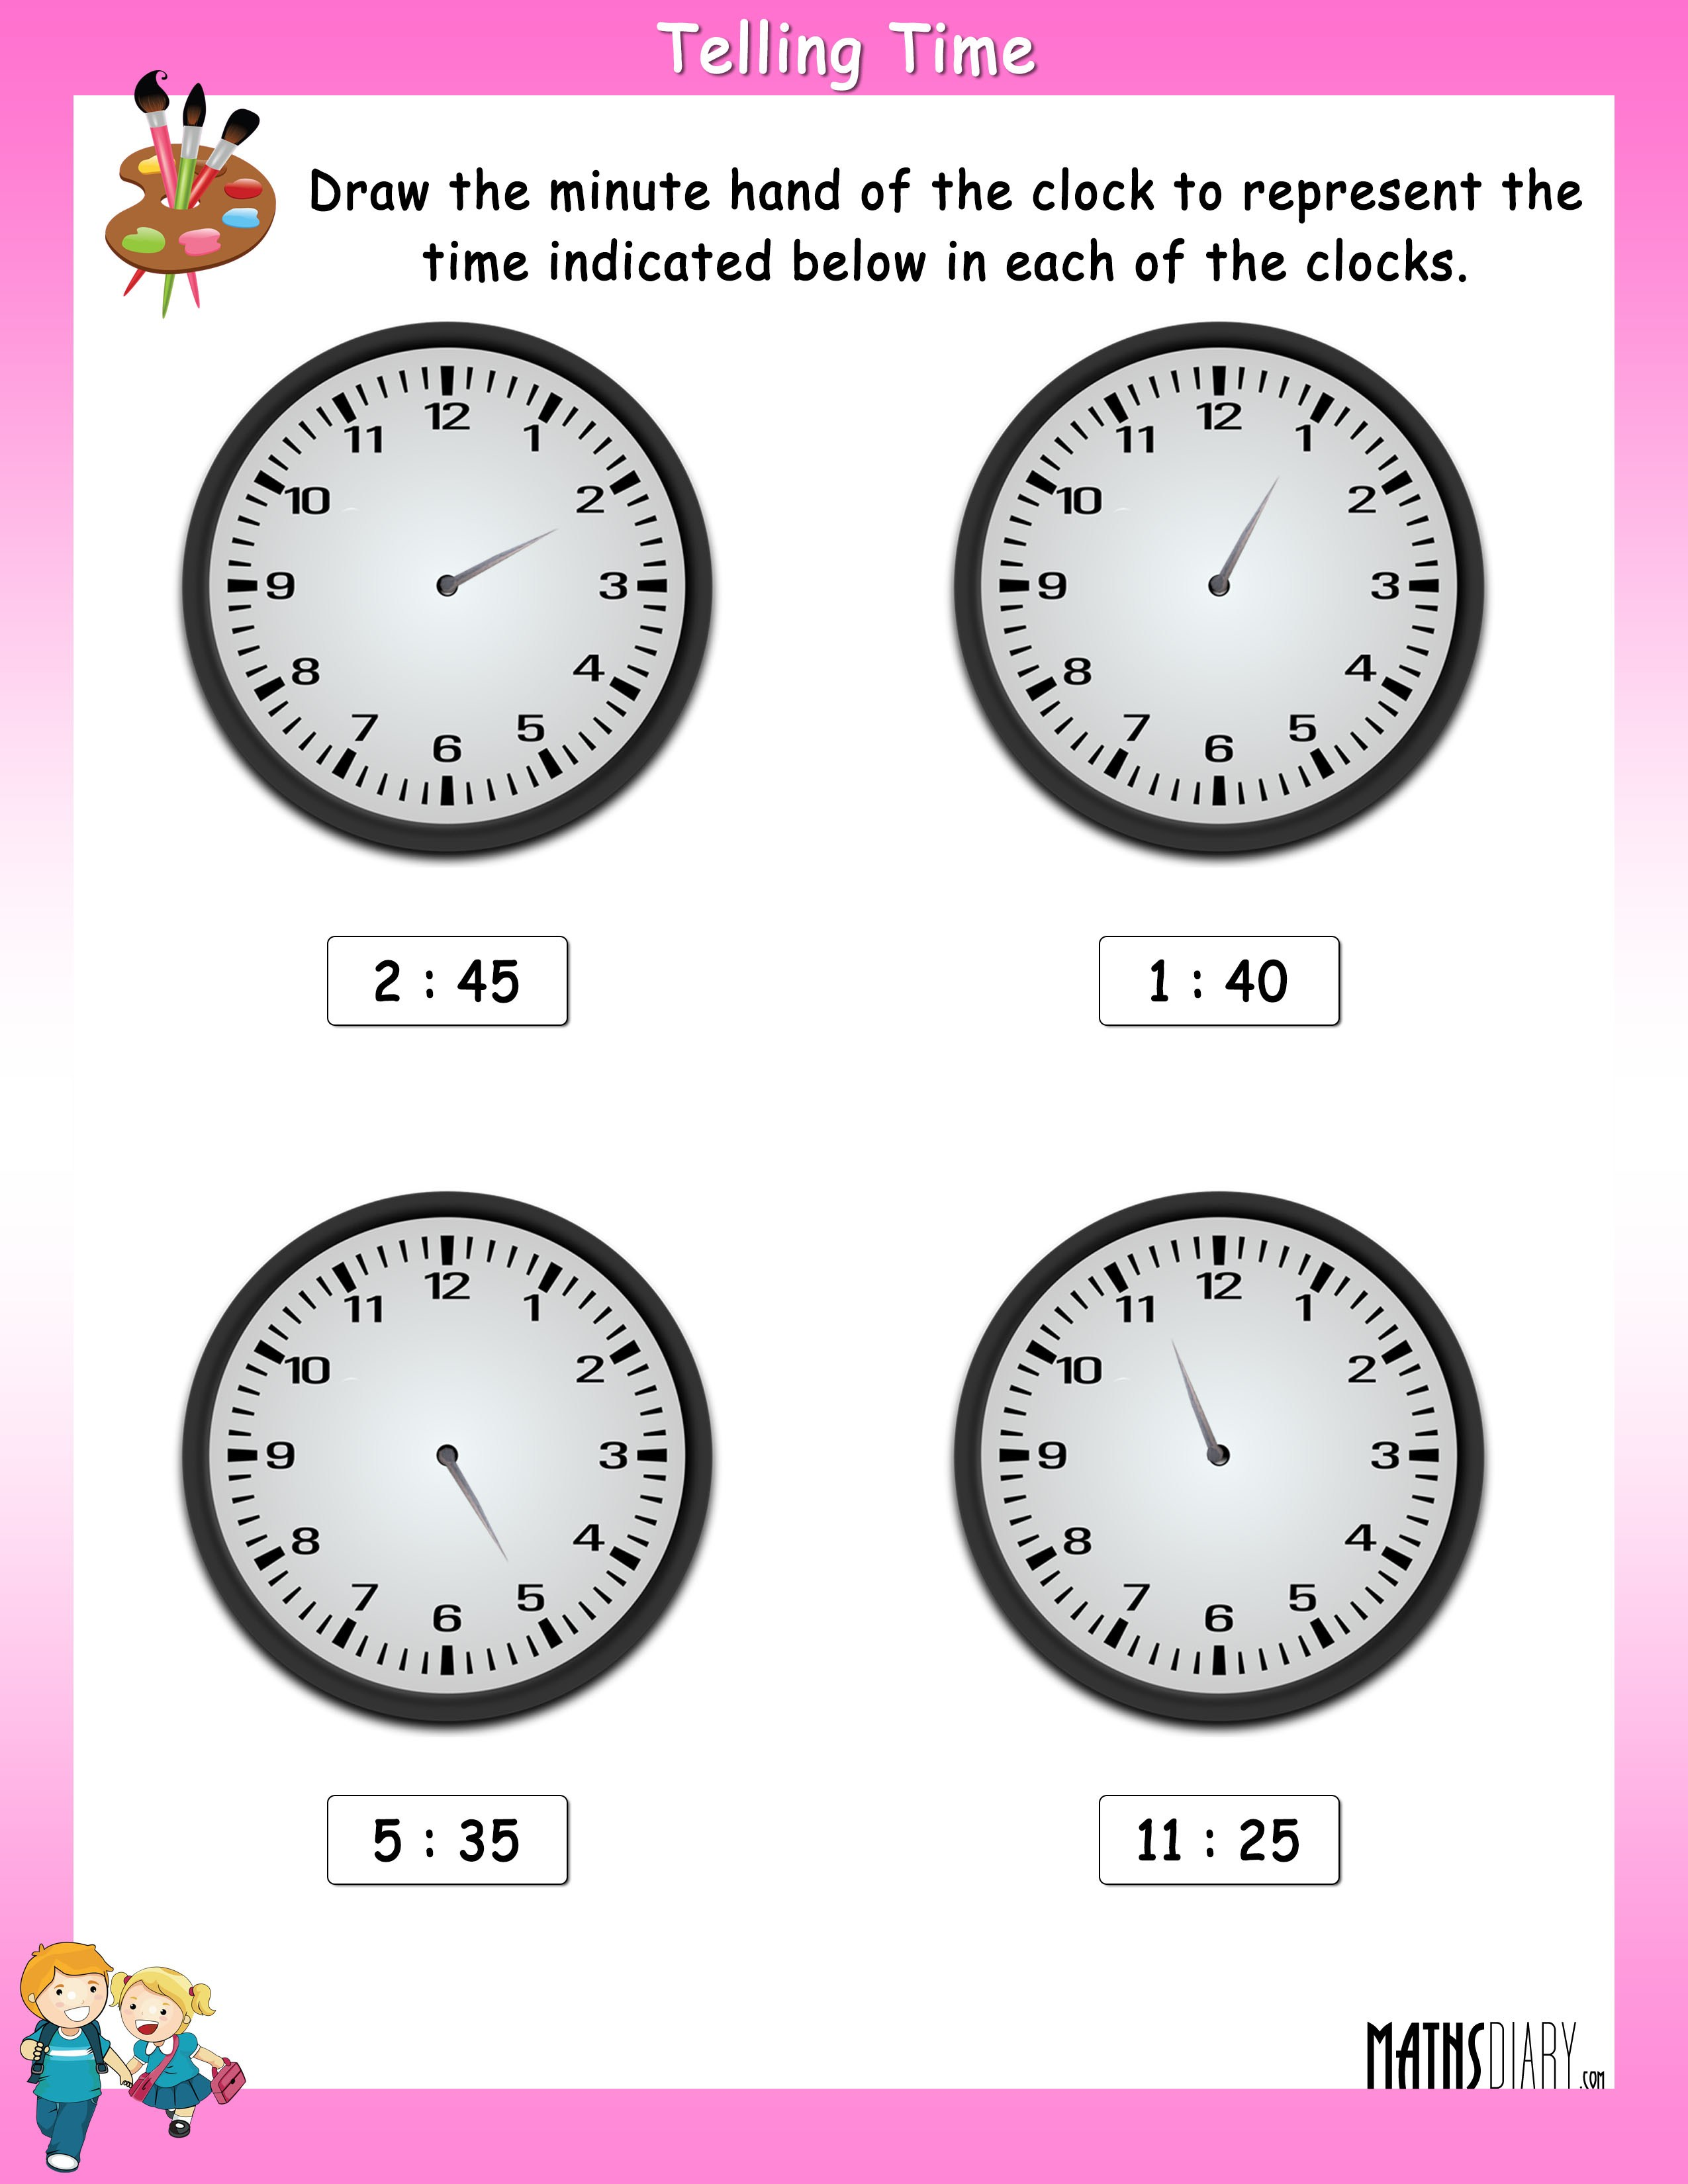 Draw The Minute Hand In The Clock To Show The Indicated Time